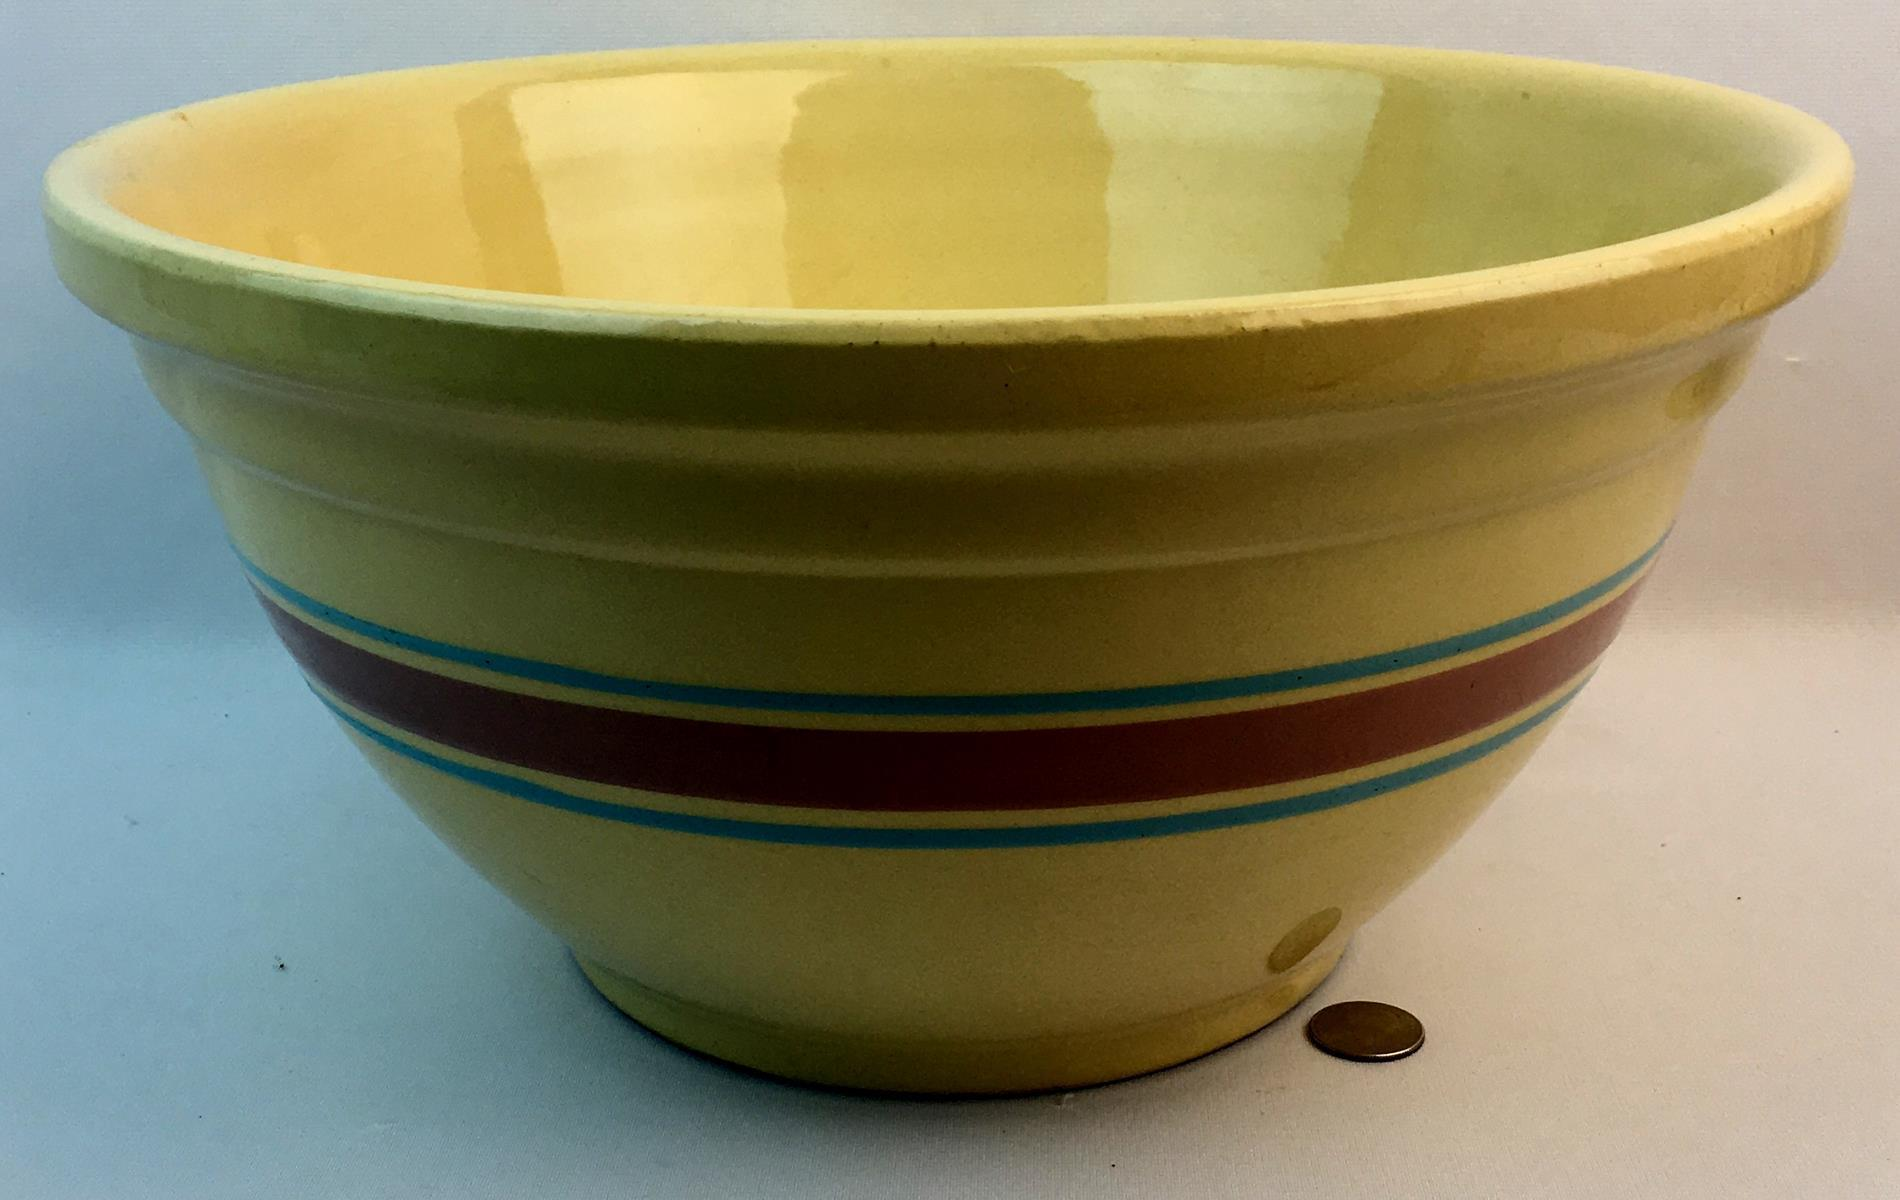 "Vintage Watt Oven Ware USA #14 Large 3 Banded Mixing Bowl 14.25"" Diameter"